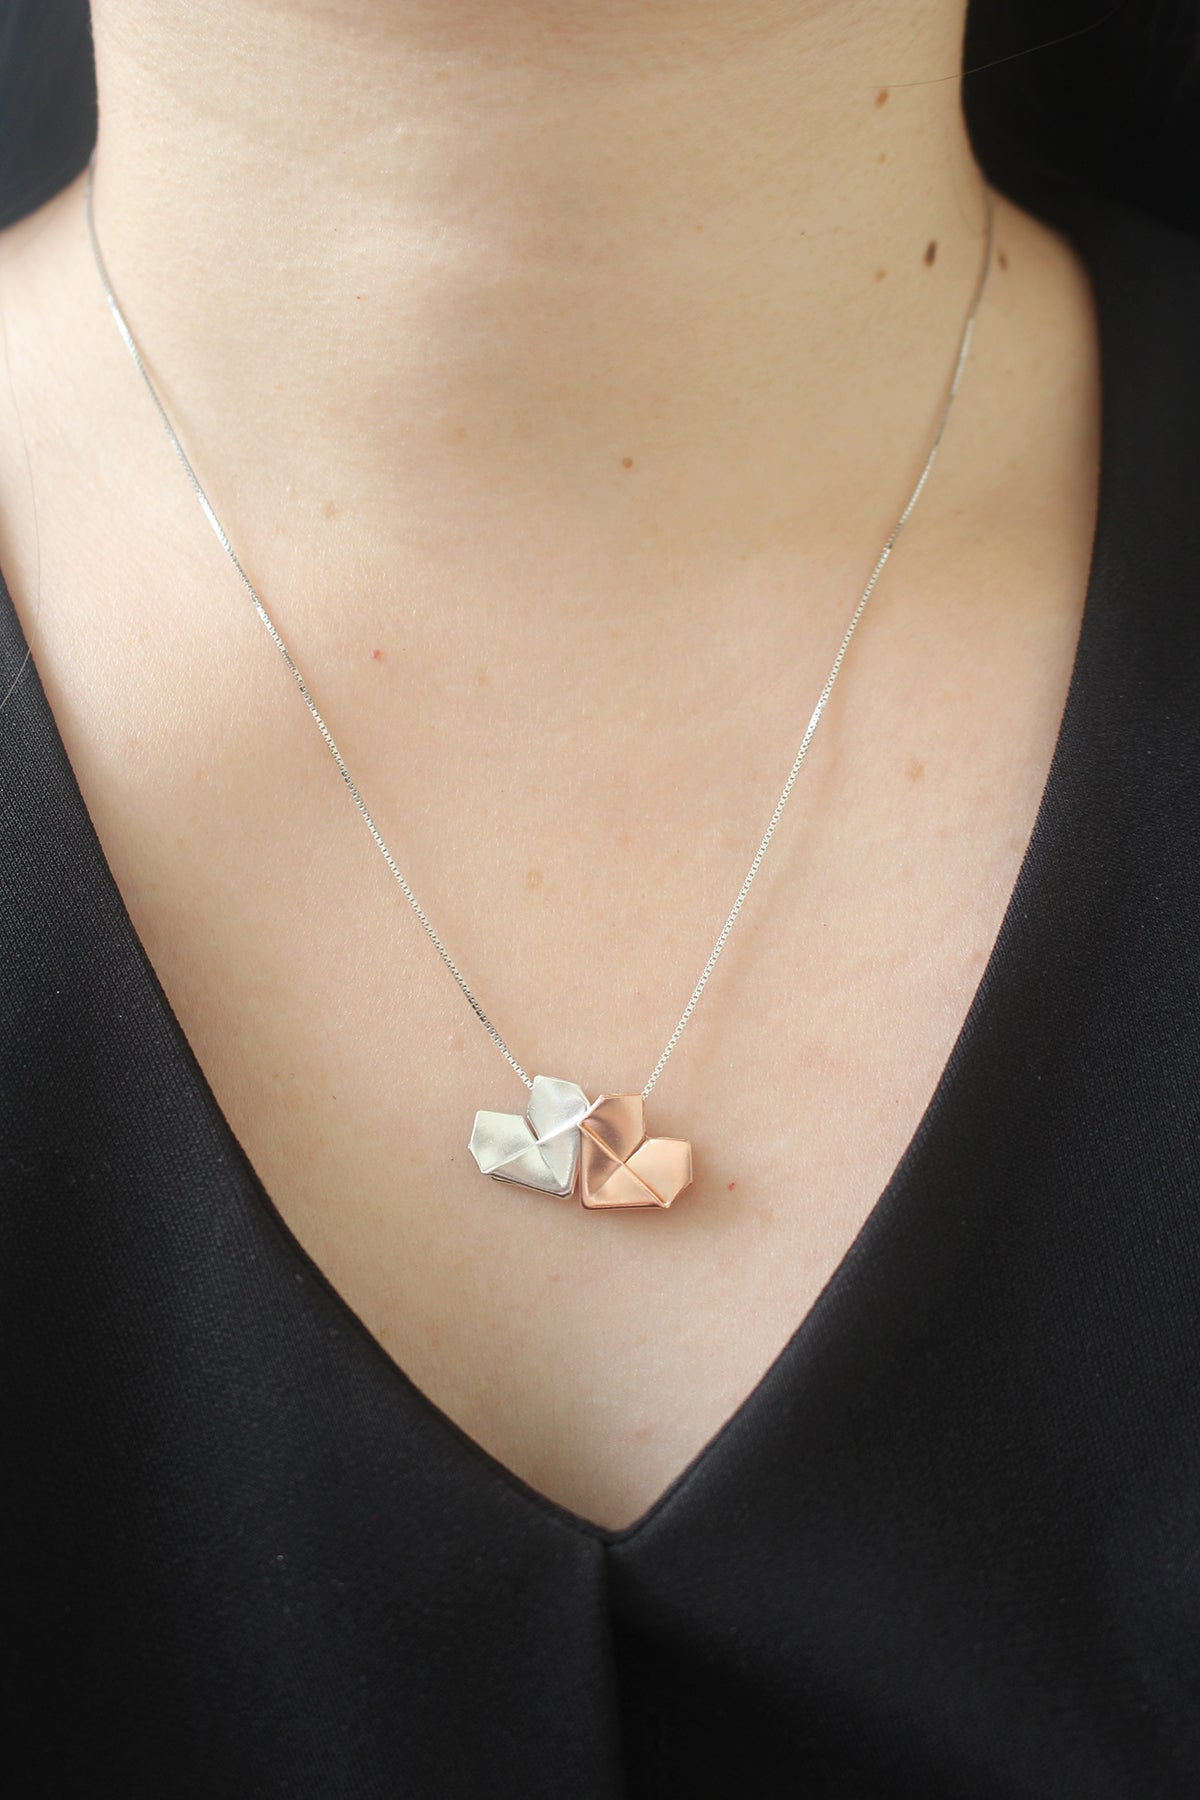 Trio Heart Necklace - Silver Origami Heart Necklace in Three Colors